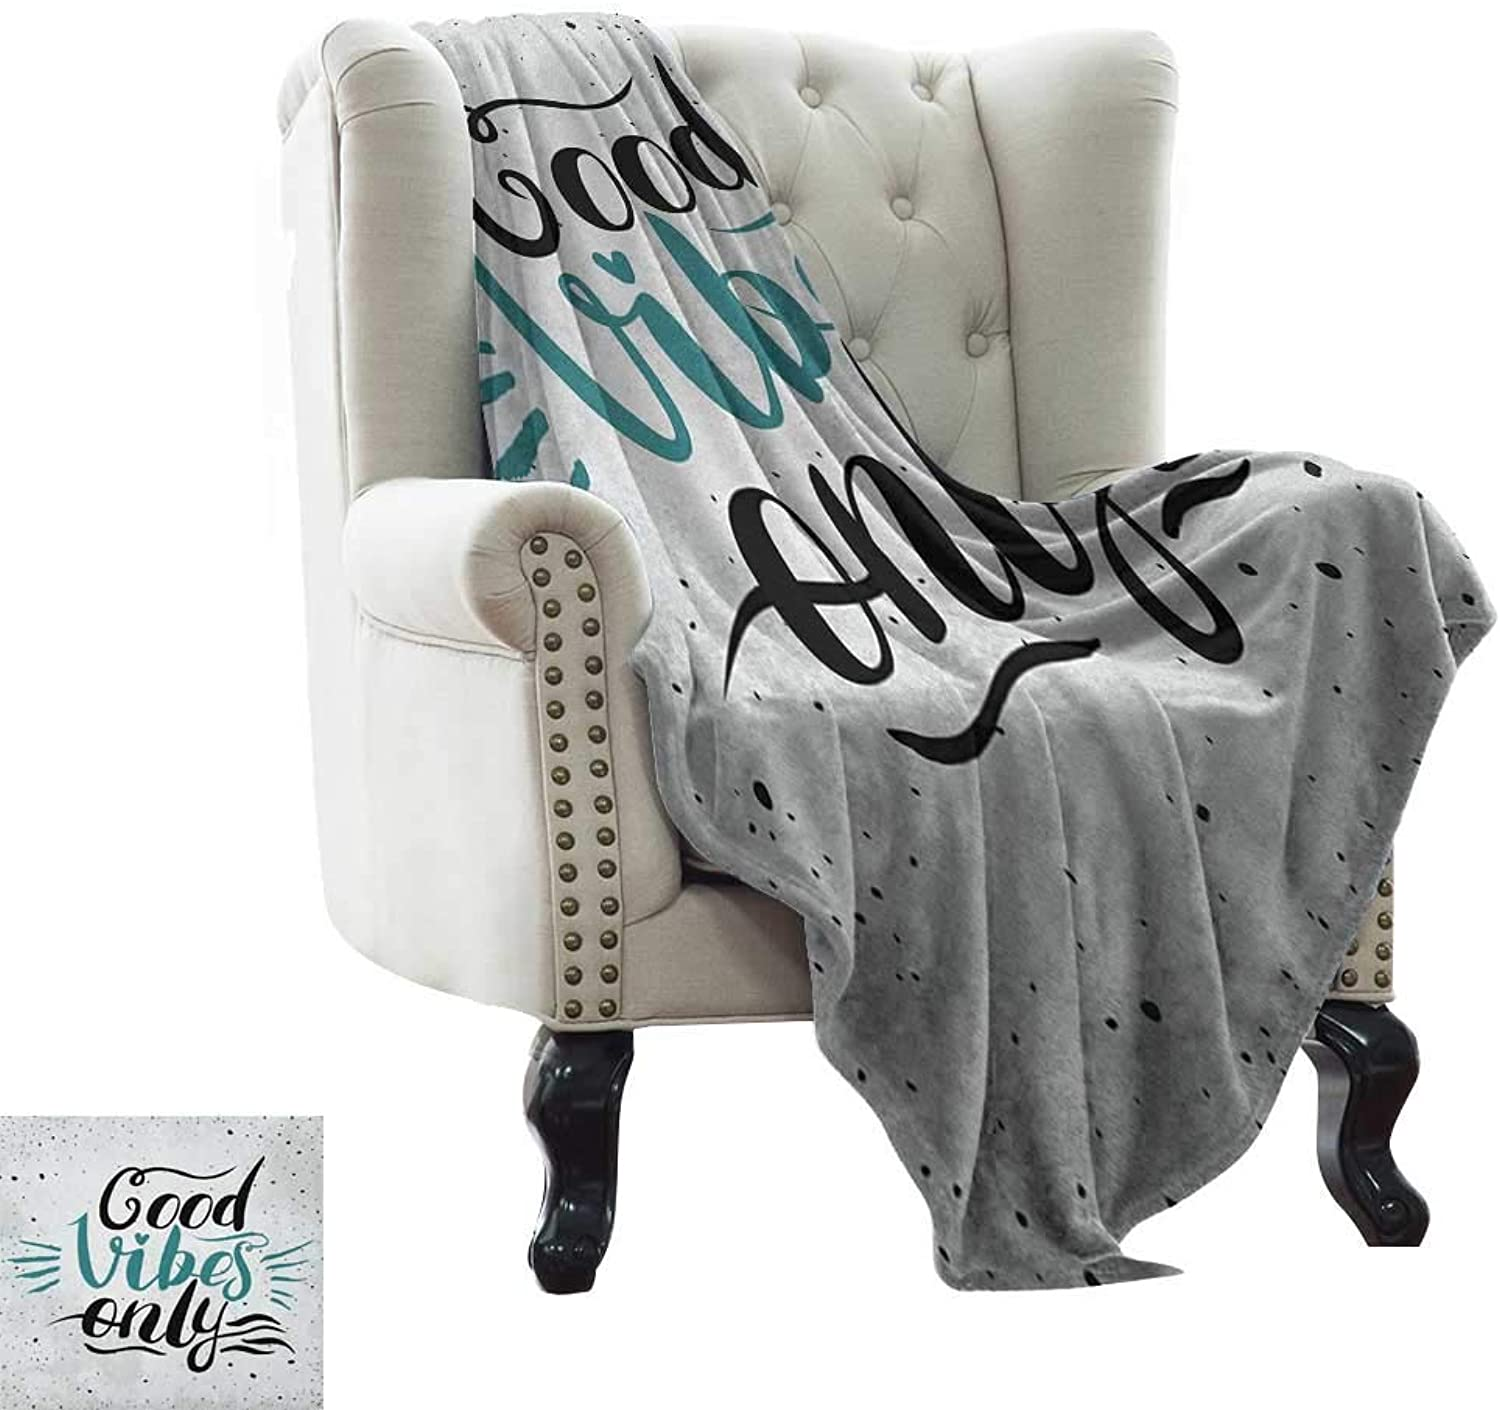 Weighted Blanket for Kids Good Vibes,Stylized Hand Letters Calligraphy Dots Wavy Lines and Little Heart Modern, Teal Black Beige for Bed & Couch Sofa Easy Care 50 x60